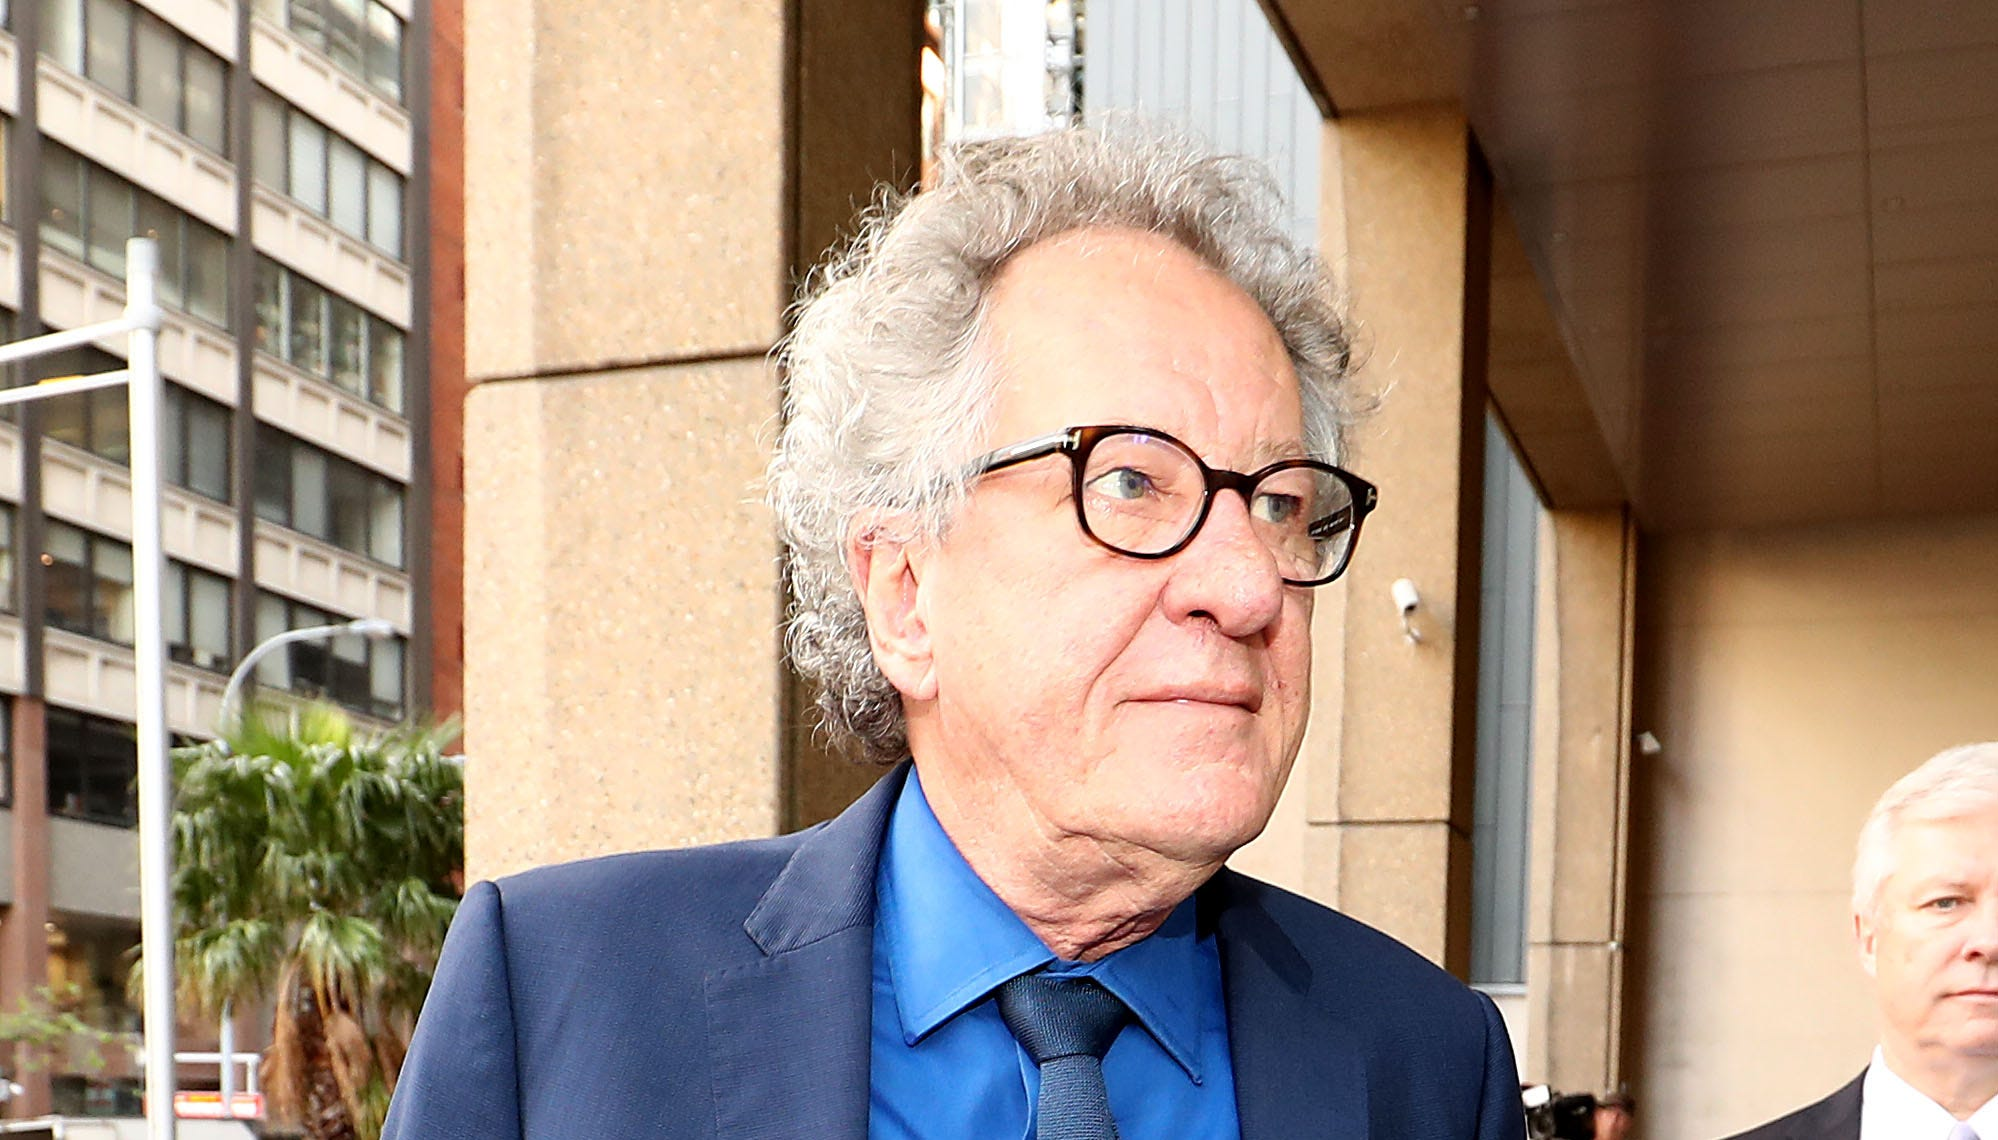 Geoffrey Rush arrives at the Federal Law court on Nov. 9, 2018 in Sydney, Australia.